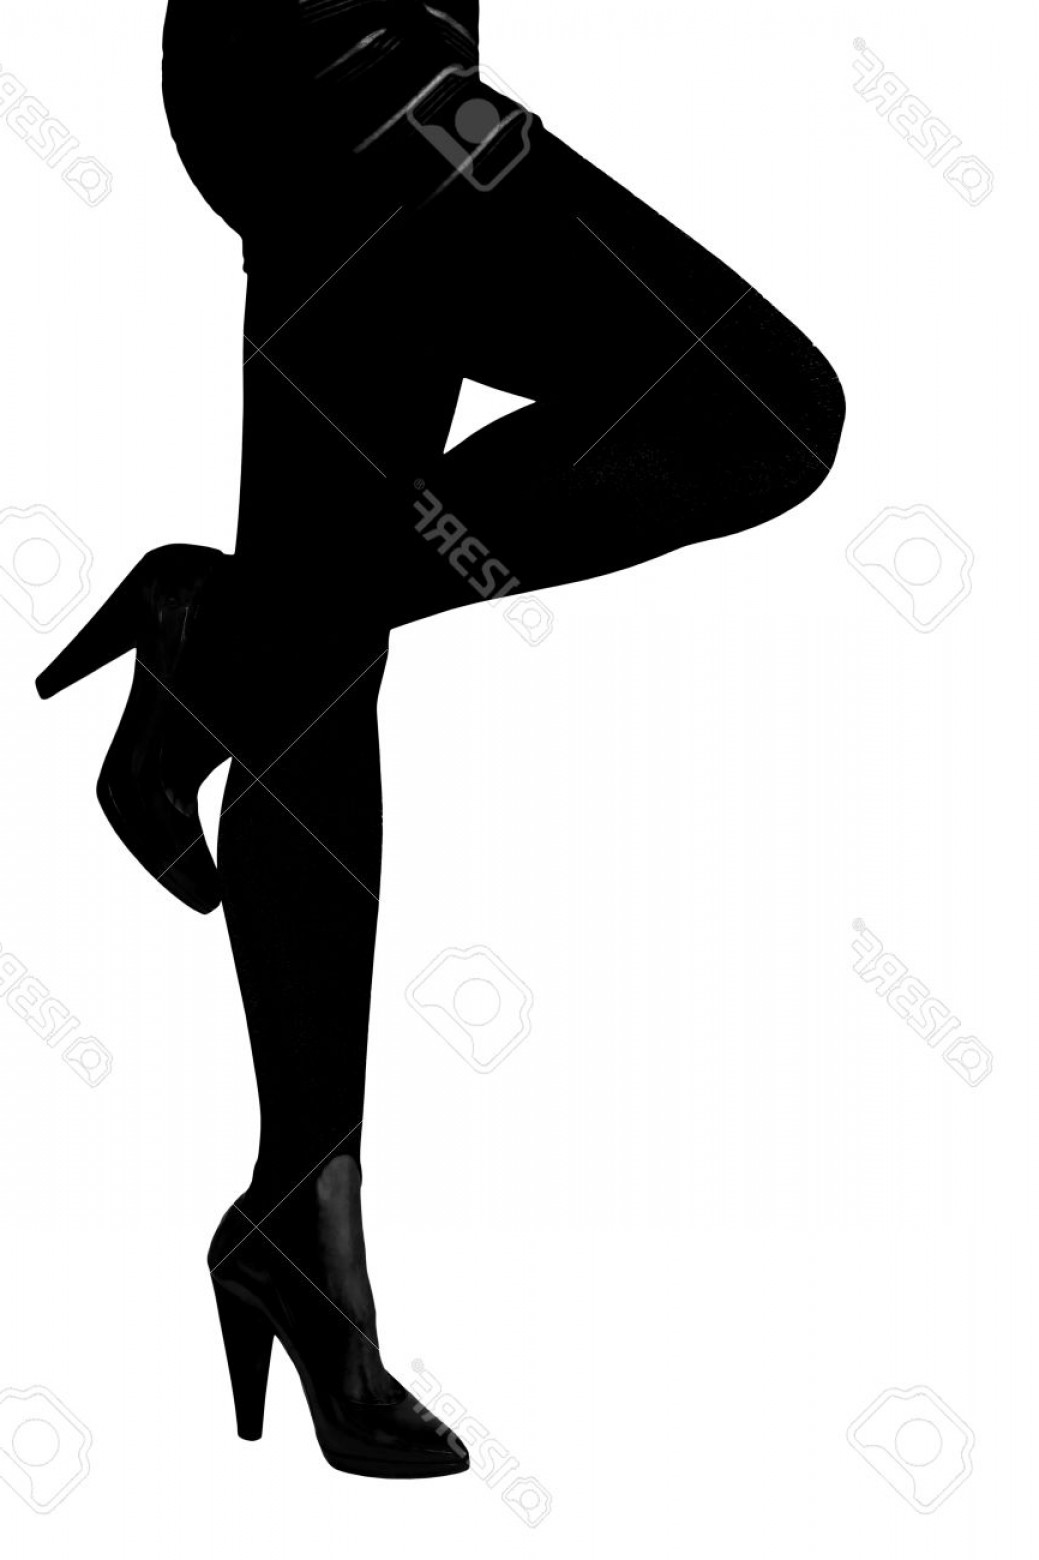 Silhouette Hee High Vector Lsitleetios: Photosilhouette Of Sexy Woman Legs In Shoes High Heels Isolated On White Background